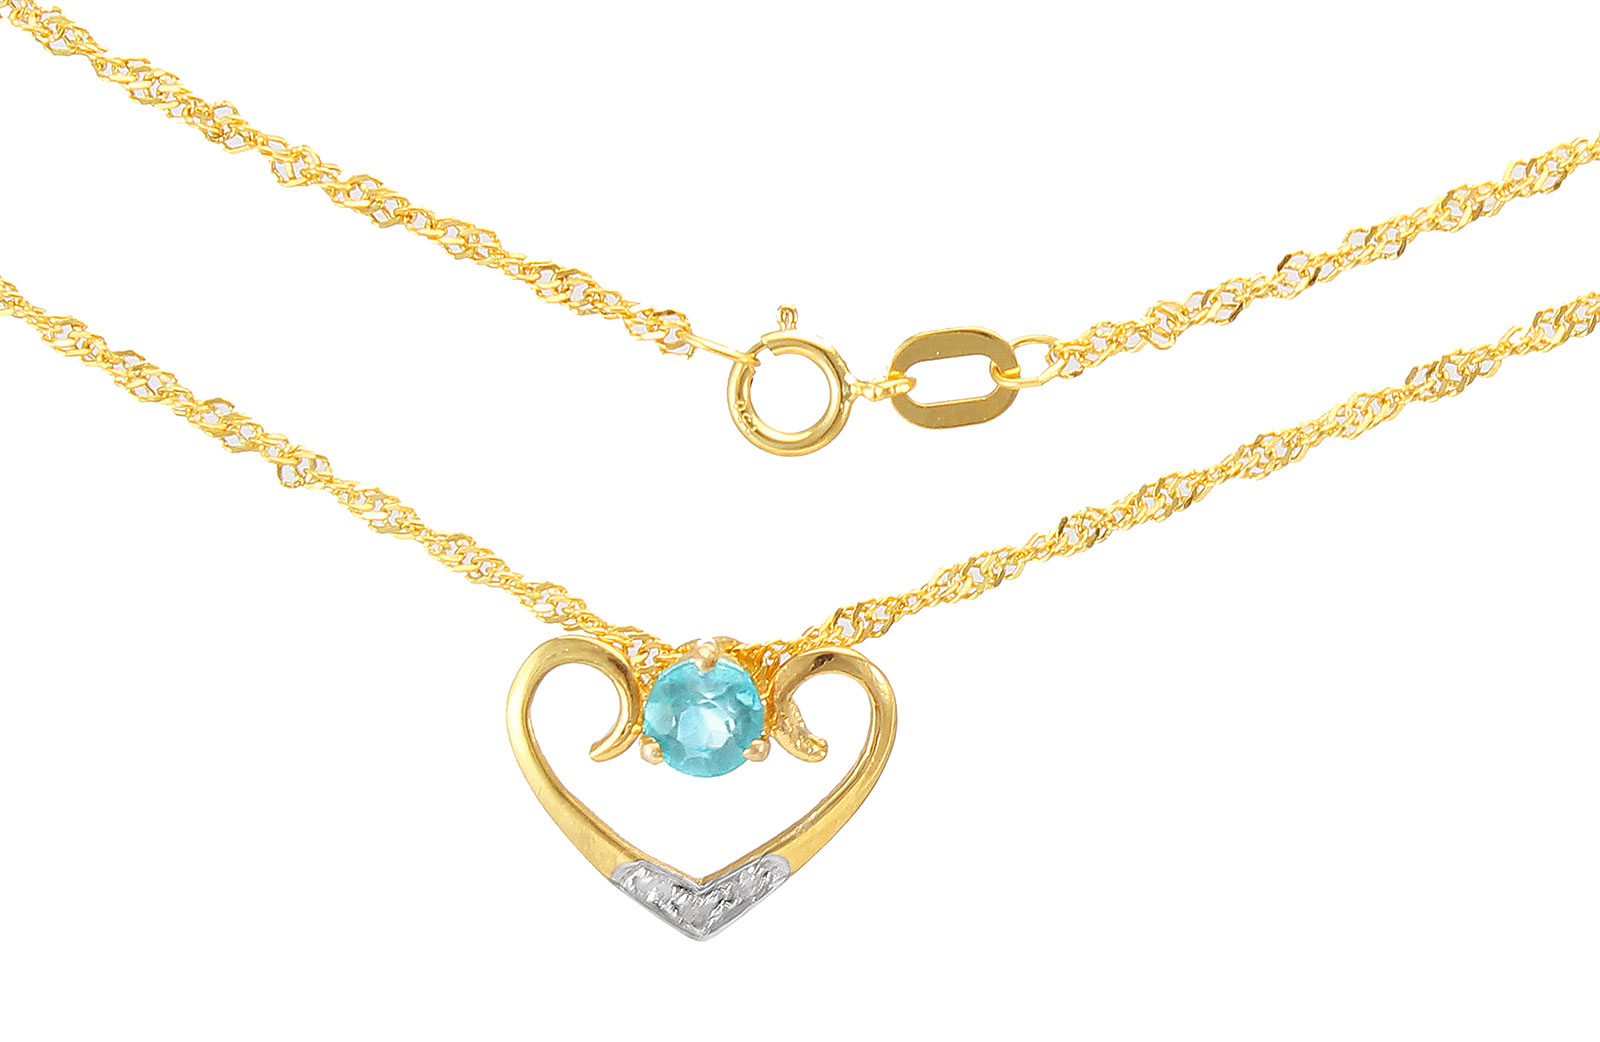 VP Jewels: 18K Solid Yellow Gold 0.03CT Genuine Diamonds  and 4mm Swiss Blue Topaz   Heart Necklace